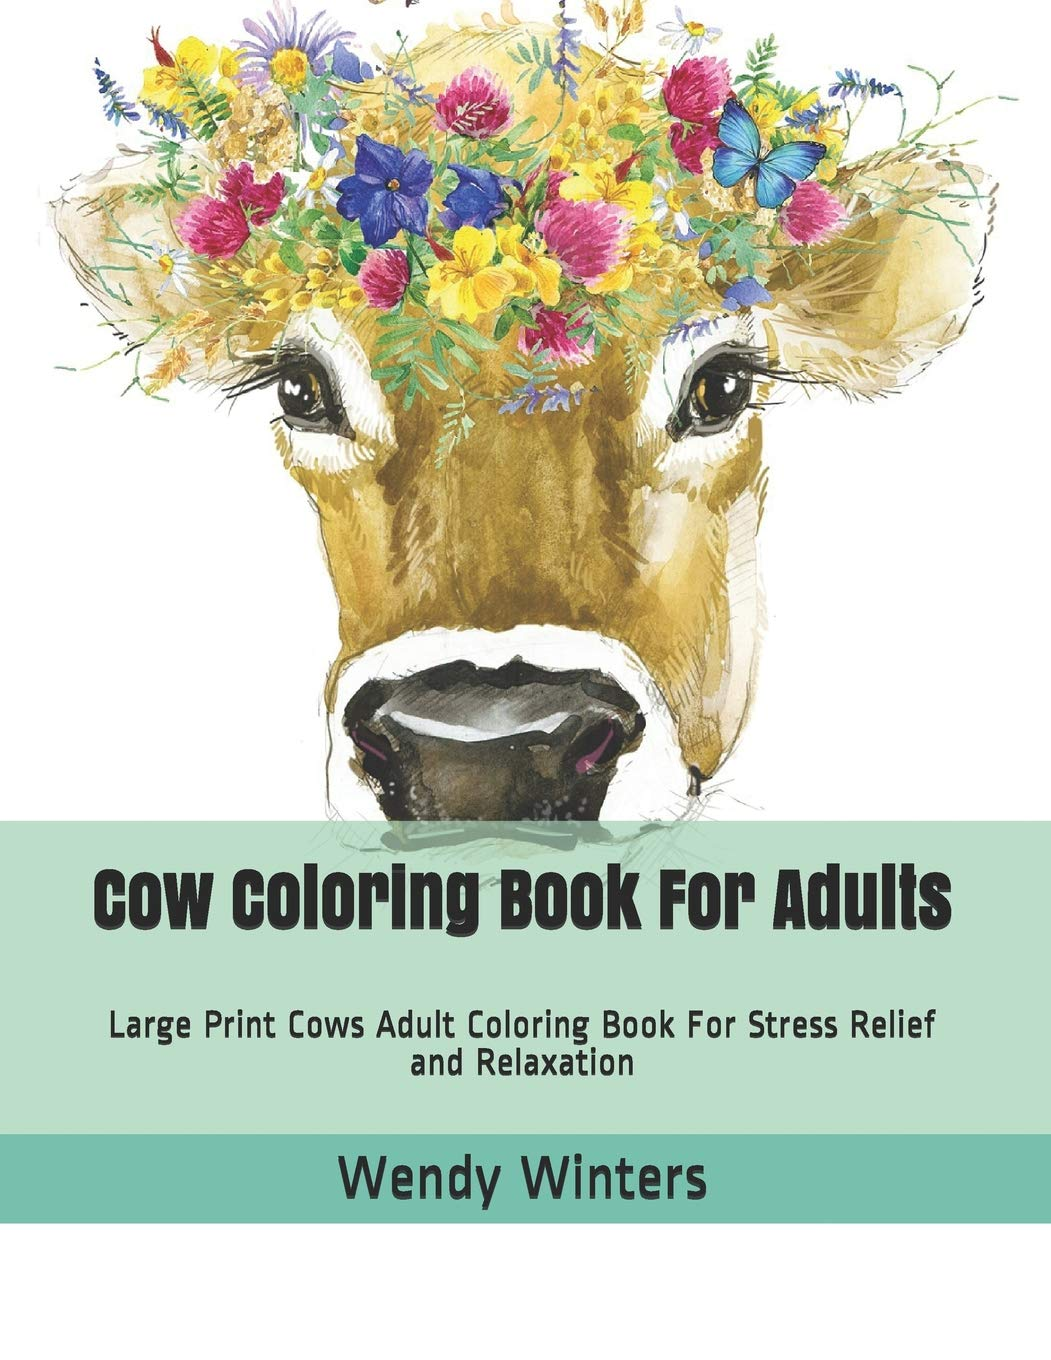 Cow Coloring Book Adults Relaxation product image